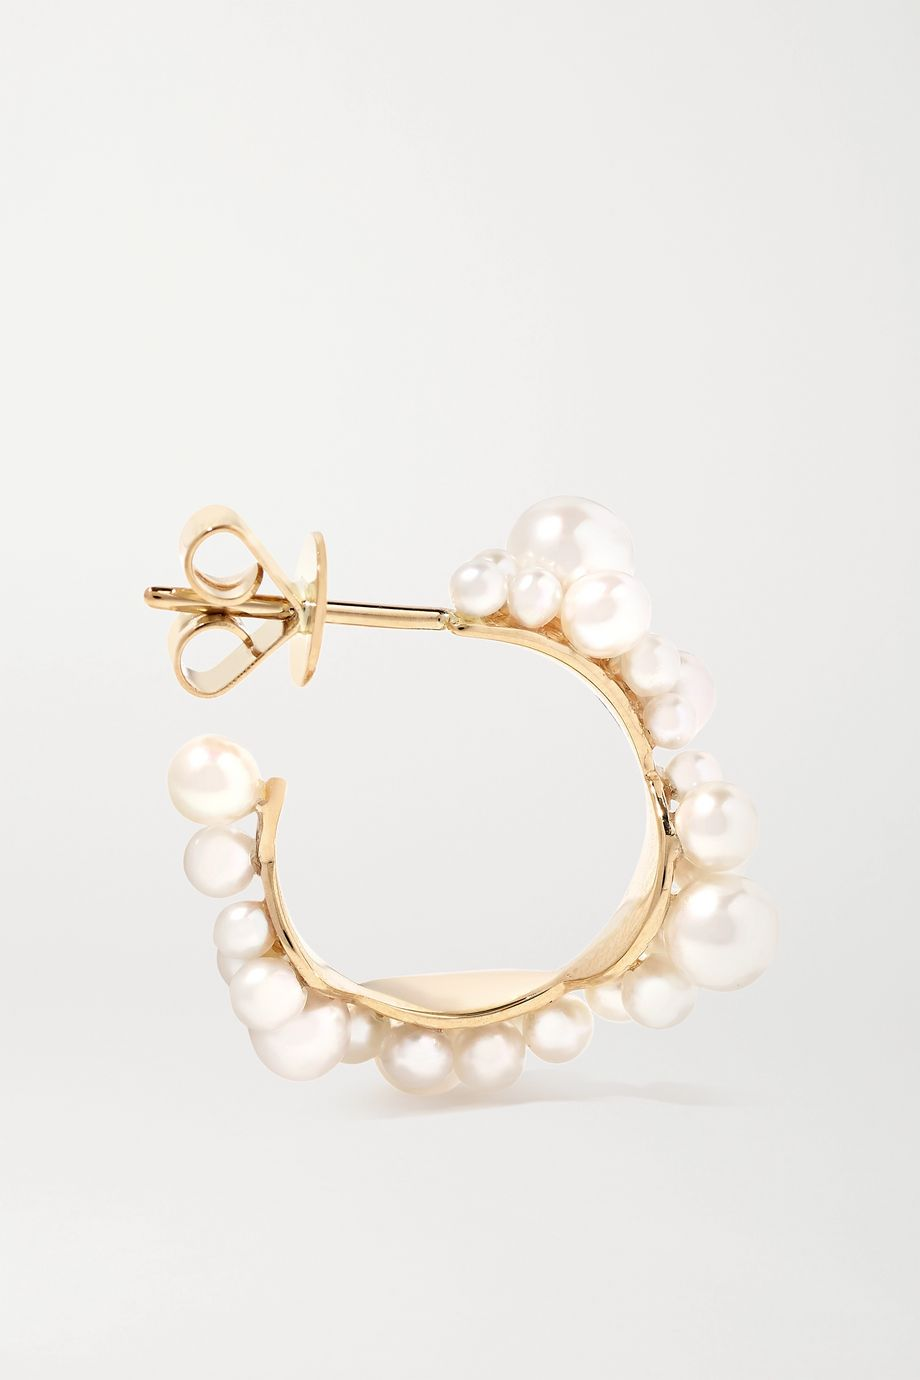 Sophie Bille Brahe Mary 14-karat gold pearl earrings